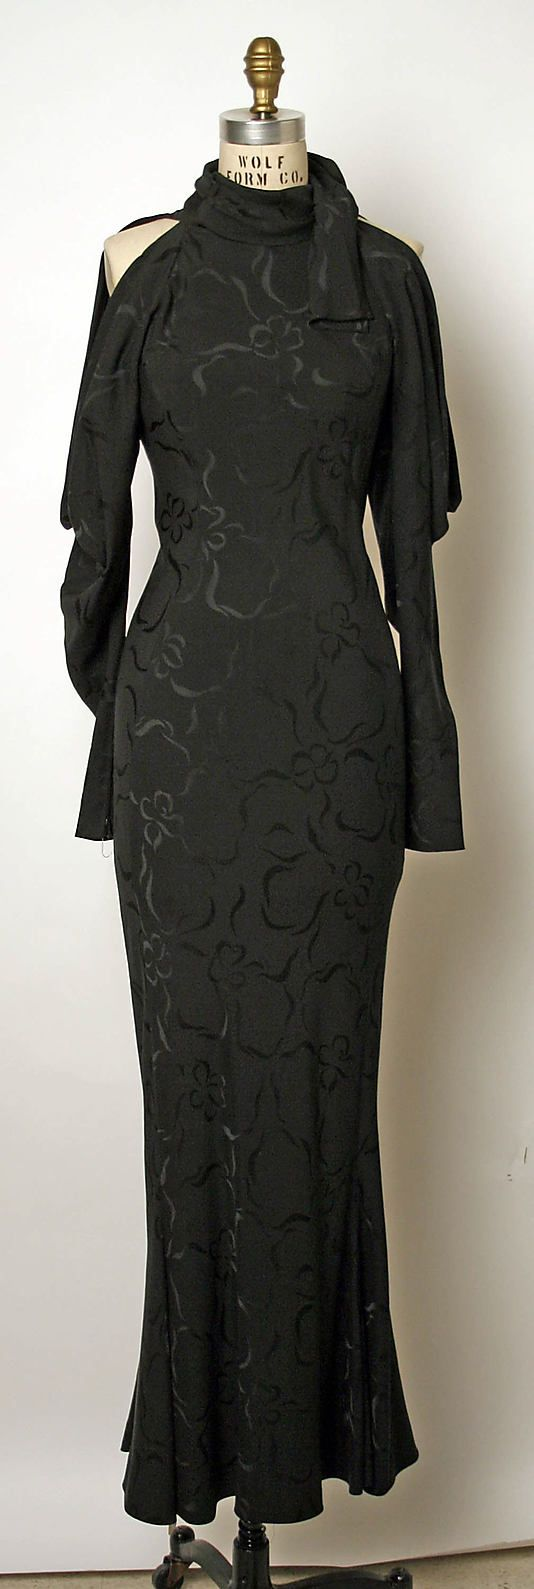 Dress, Evening  Emanuel Ungaro  (French, born 1933)  Date: early 1990s Culture: French Medium: silk